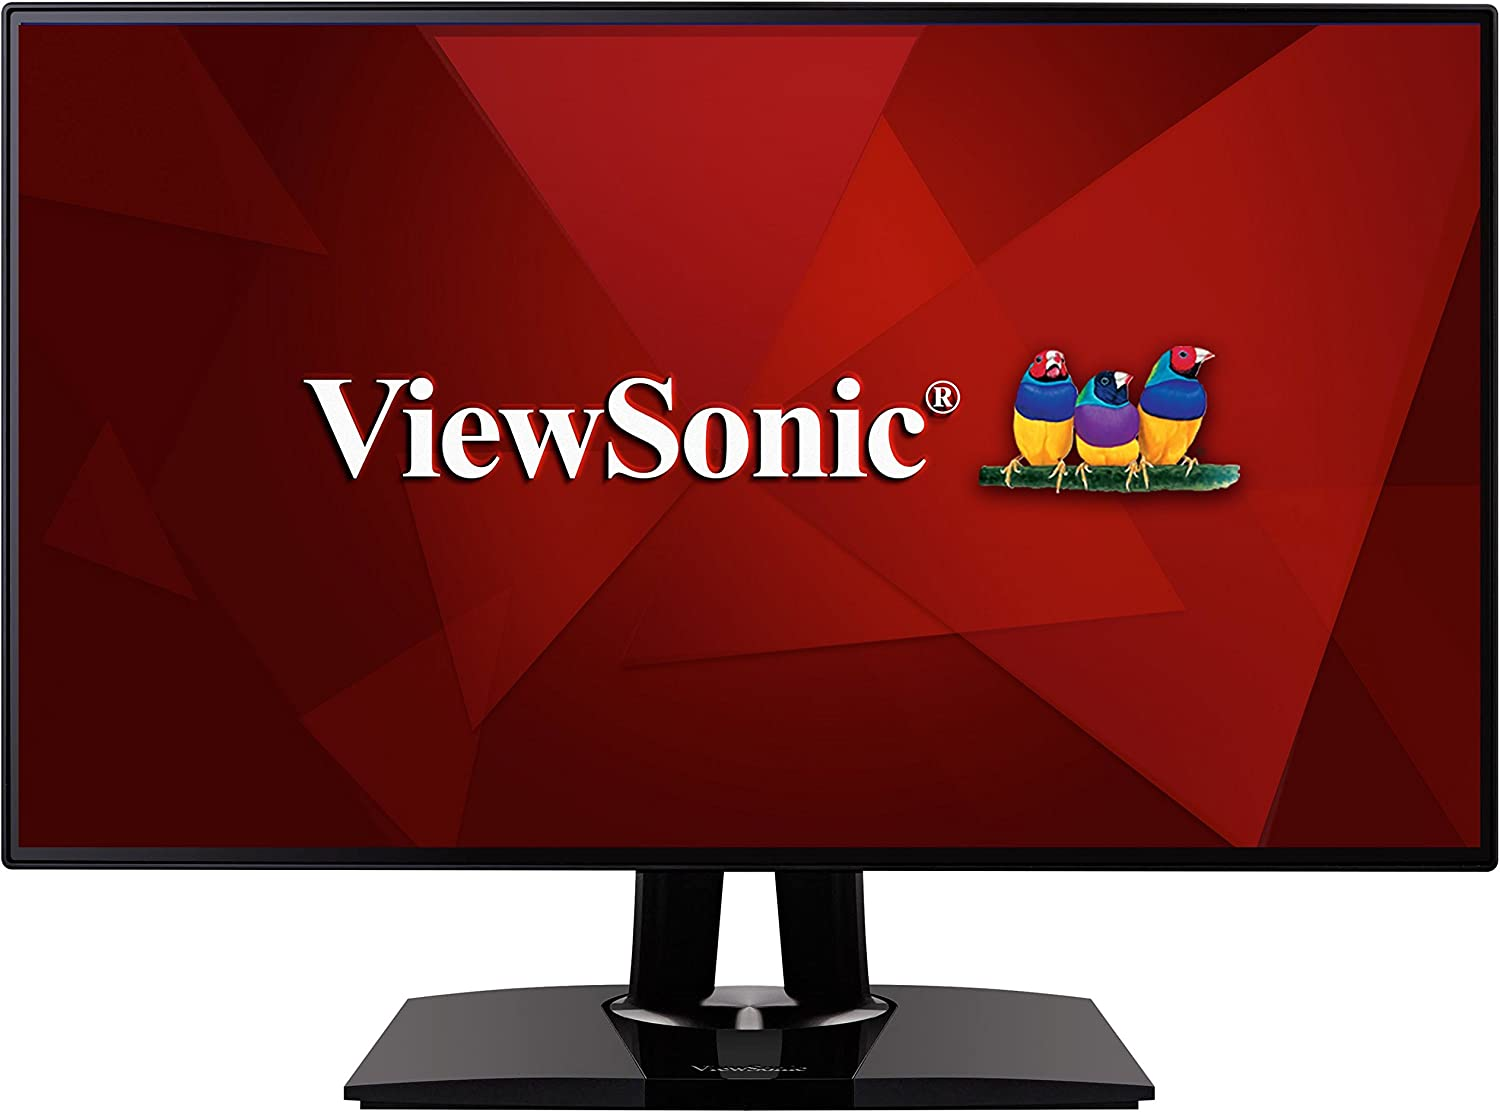 """ViewSonic VP2768 PRO 27"""" 1440p Monitor with 100% sRGB Rec 709 14-bit 3D LUT and Color Calibration for Photography and Graphic Design"""